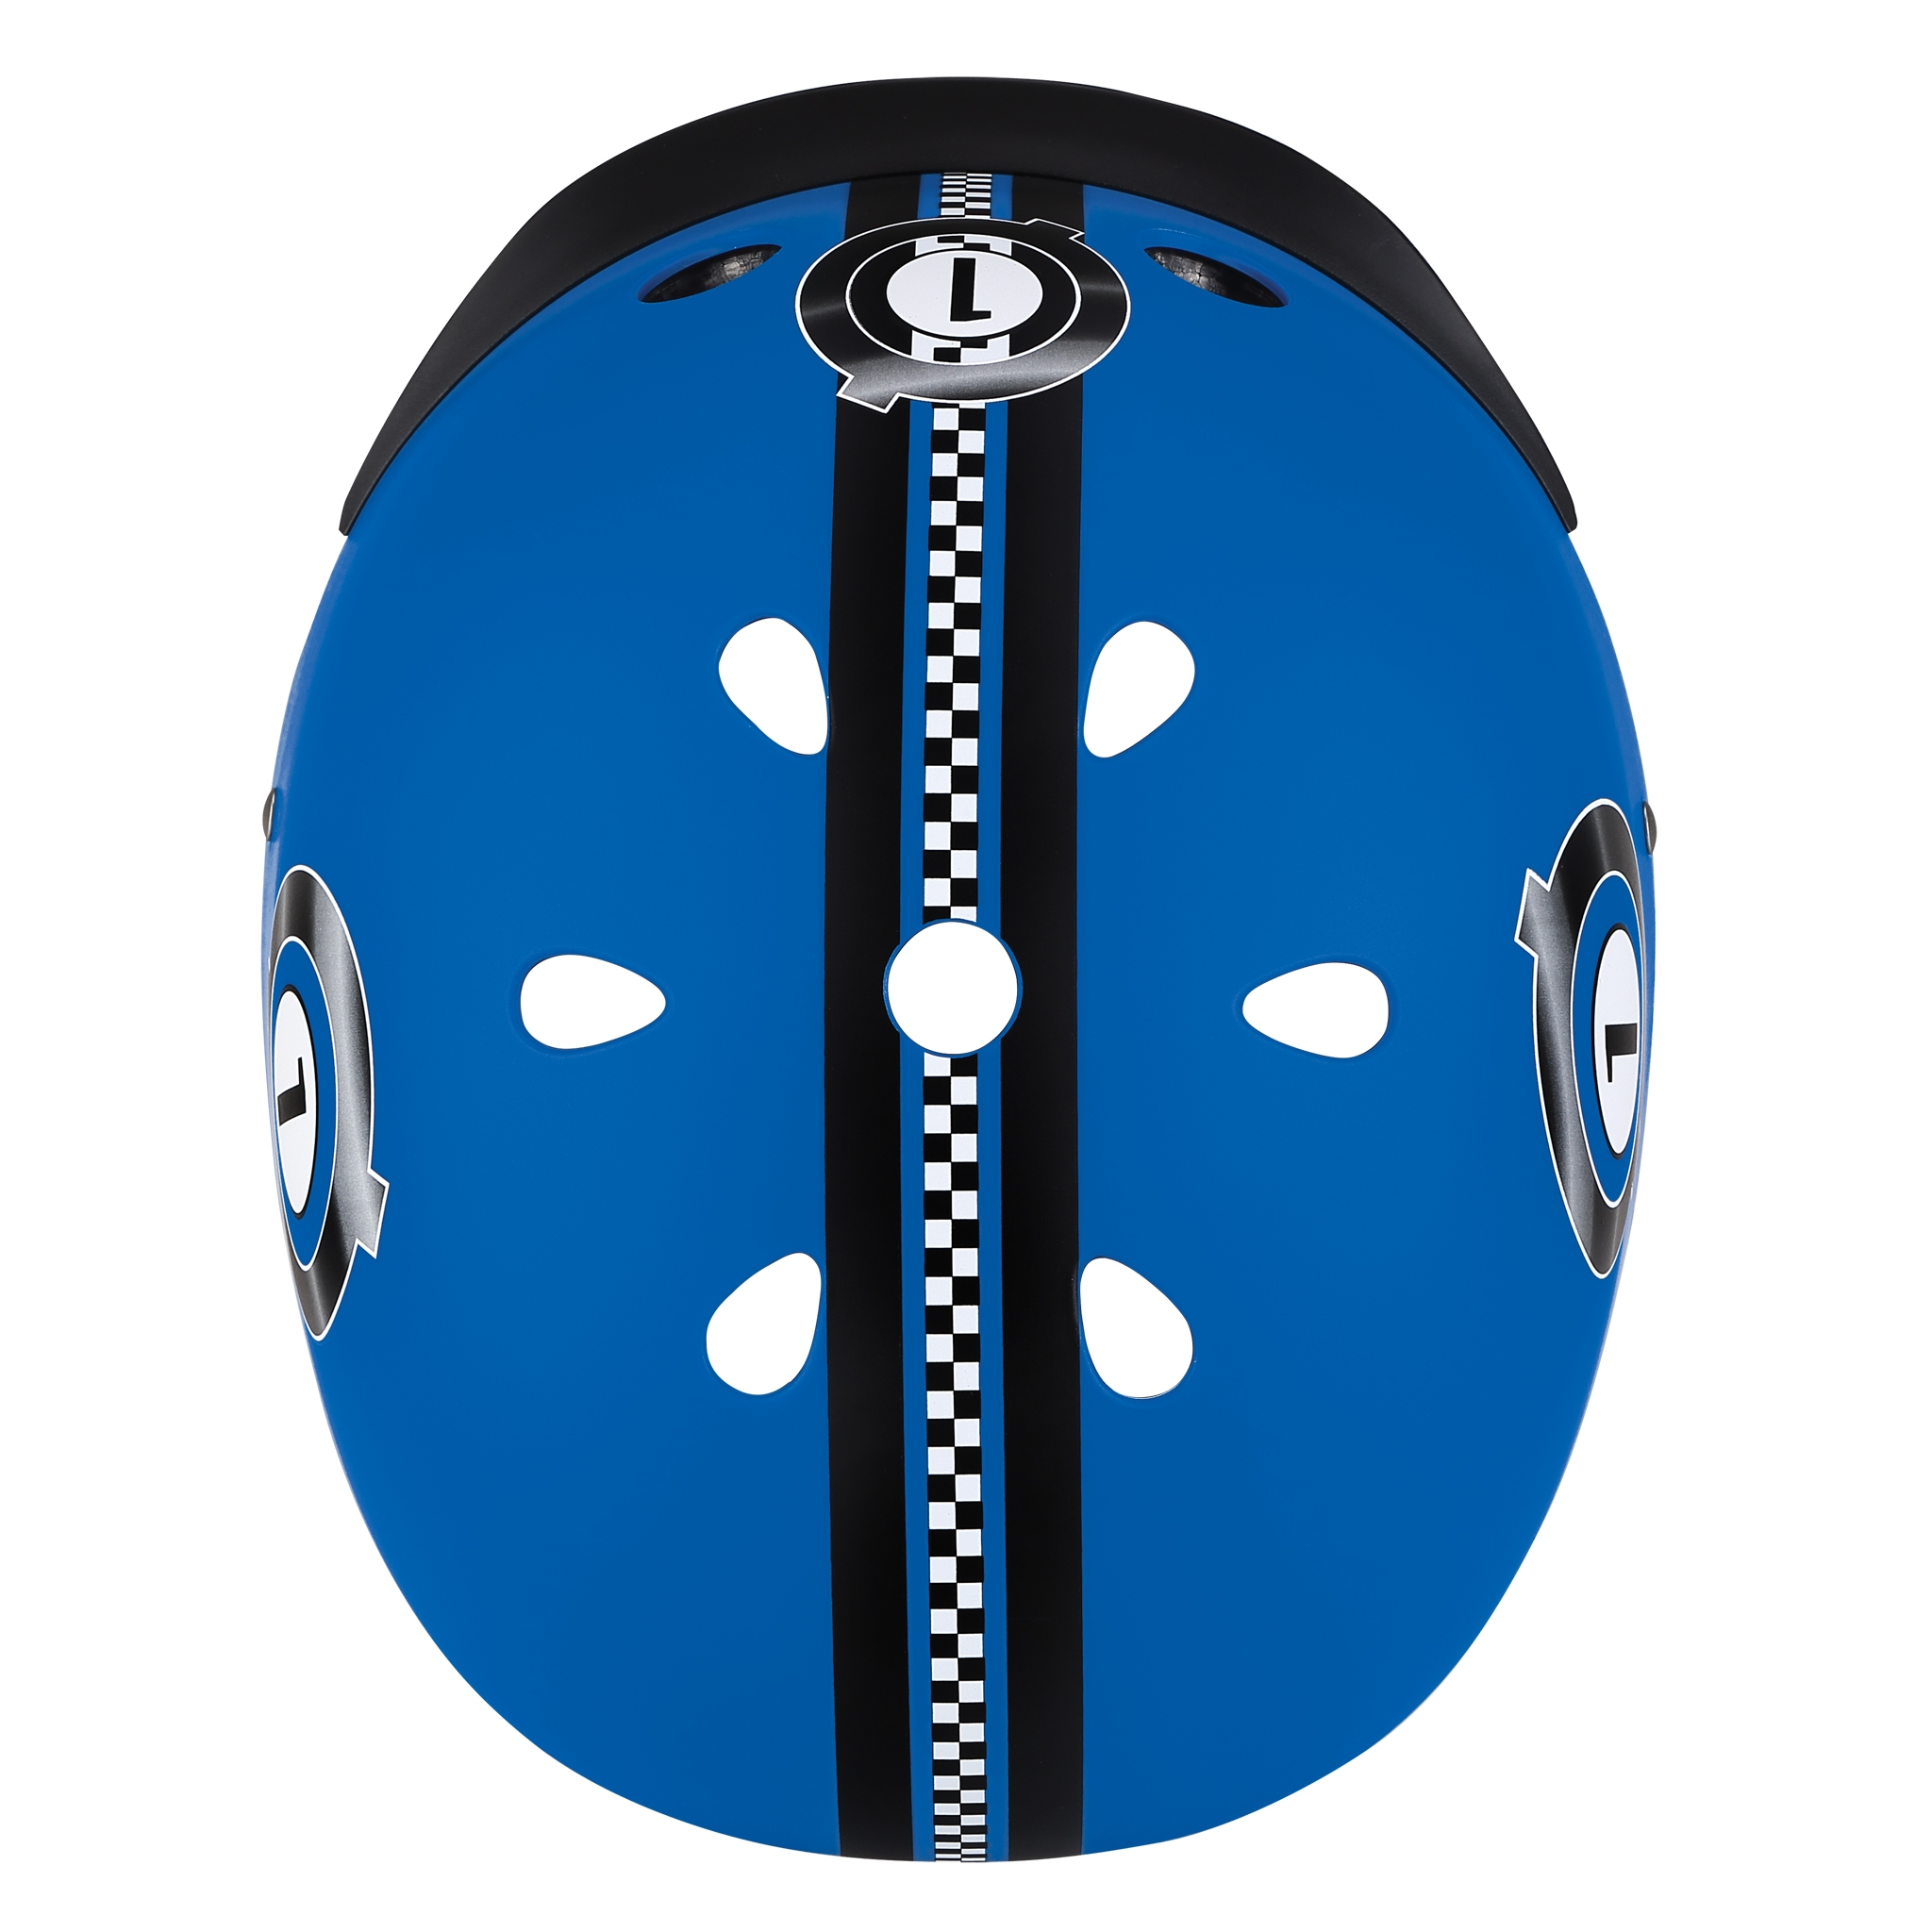 ELITE-helmets-best-scooter-helmets-for-kids-with-air-vents-cooling-system-navy-blue 3